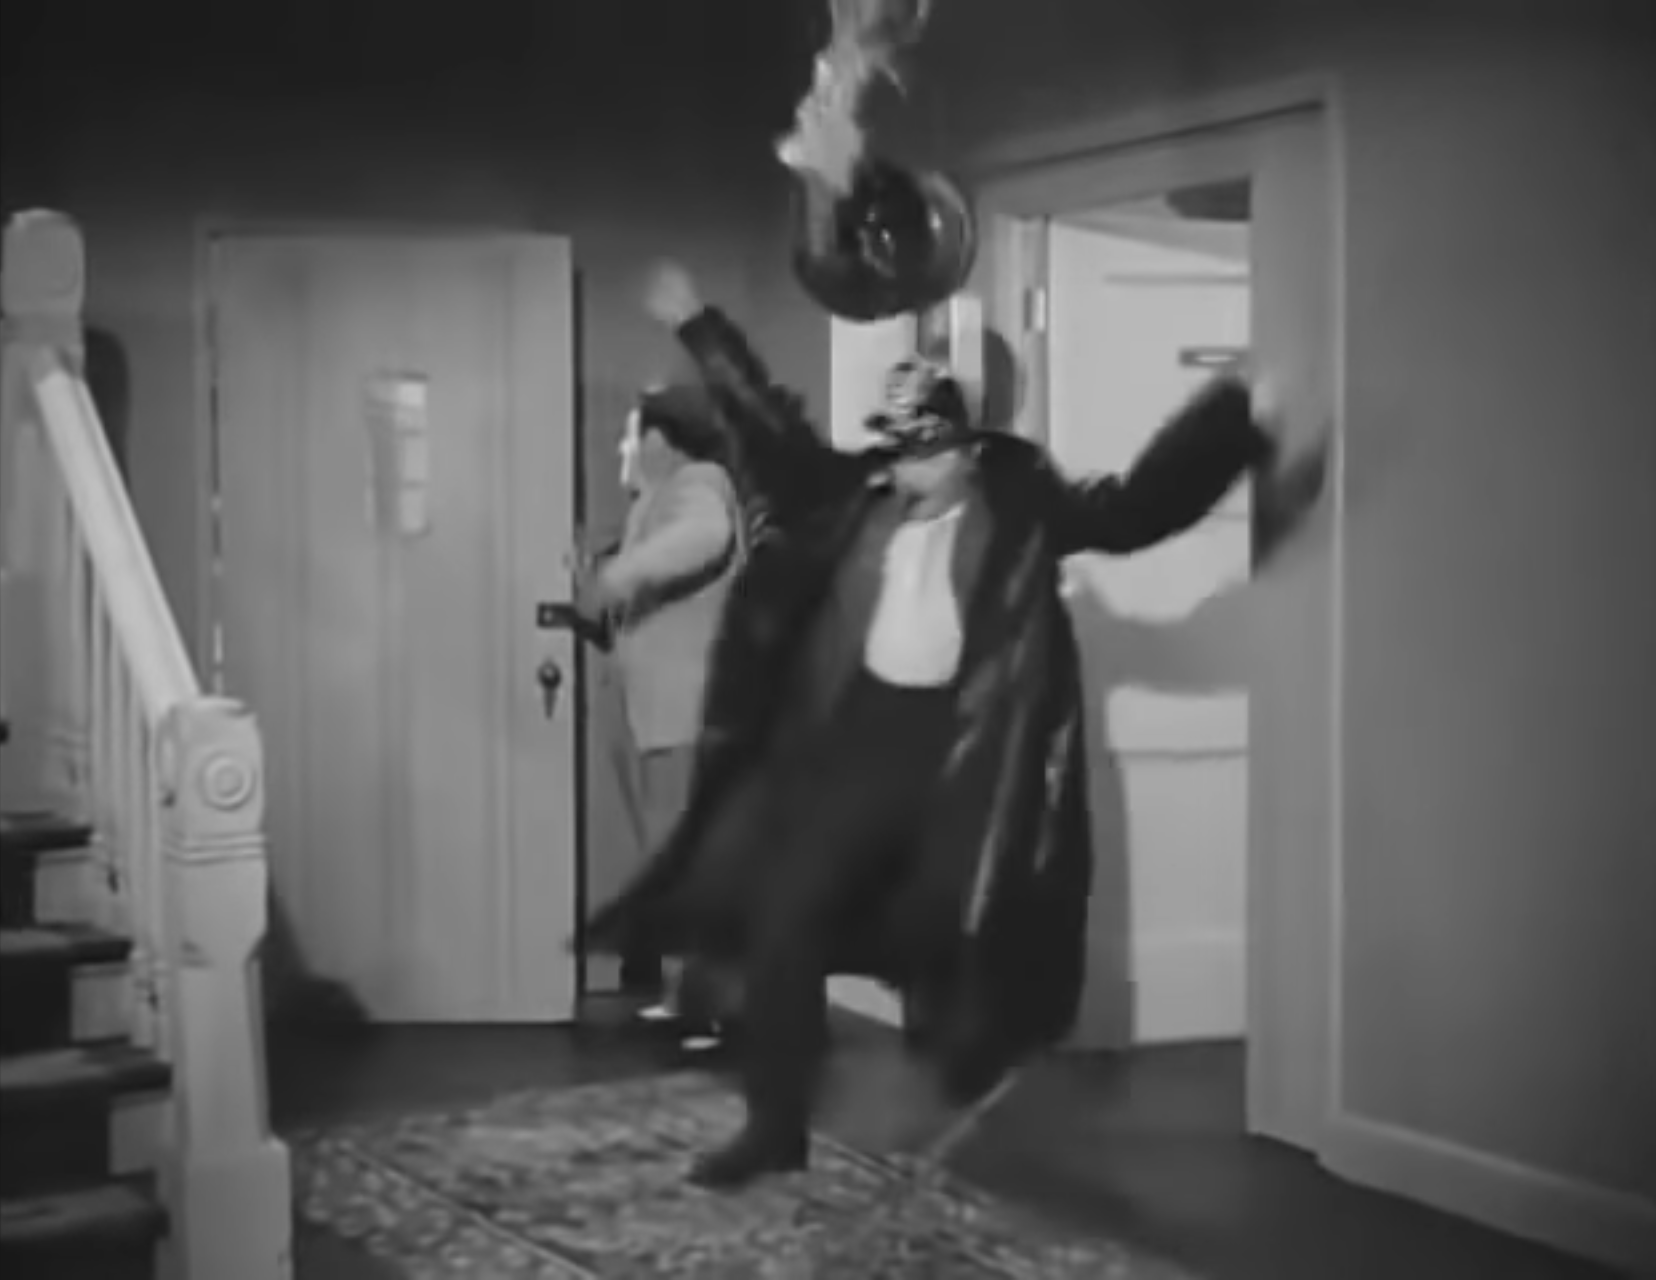 Sid Fields slips as he's trying to put out that fire in Stinky's room